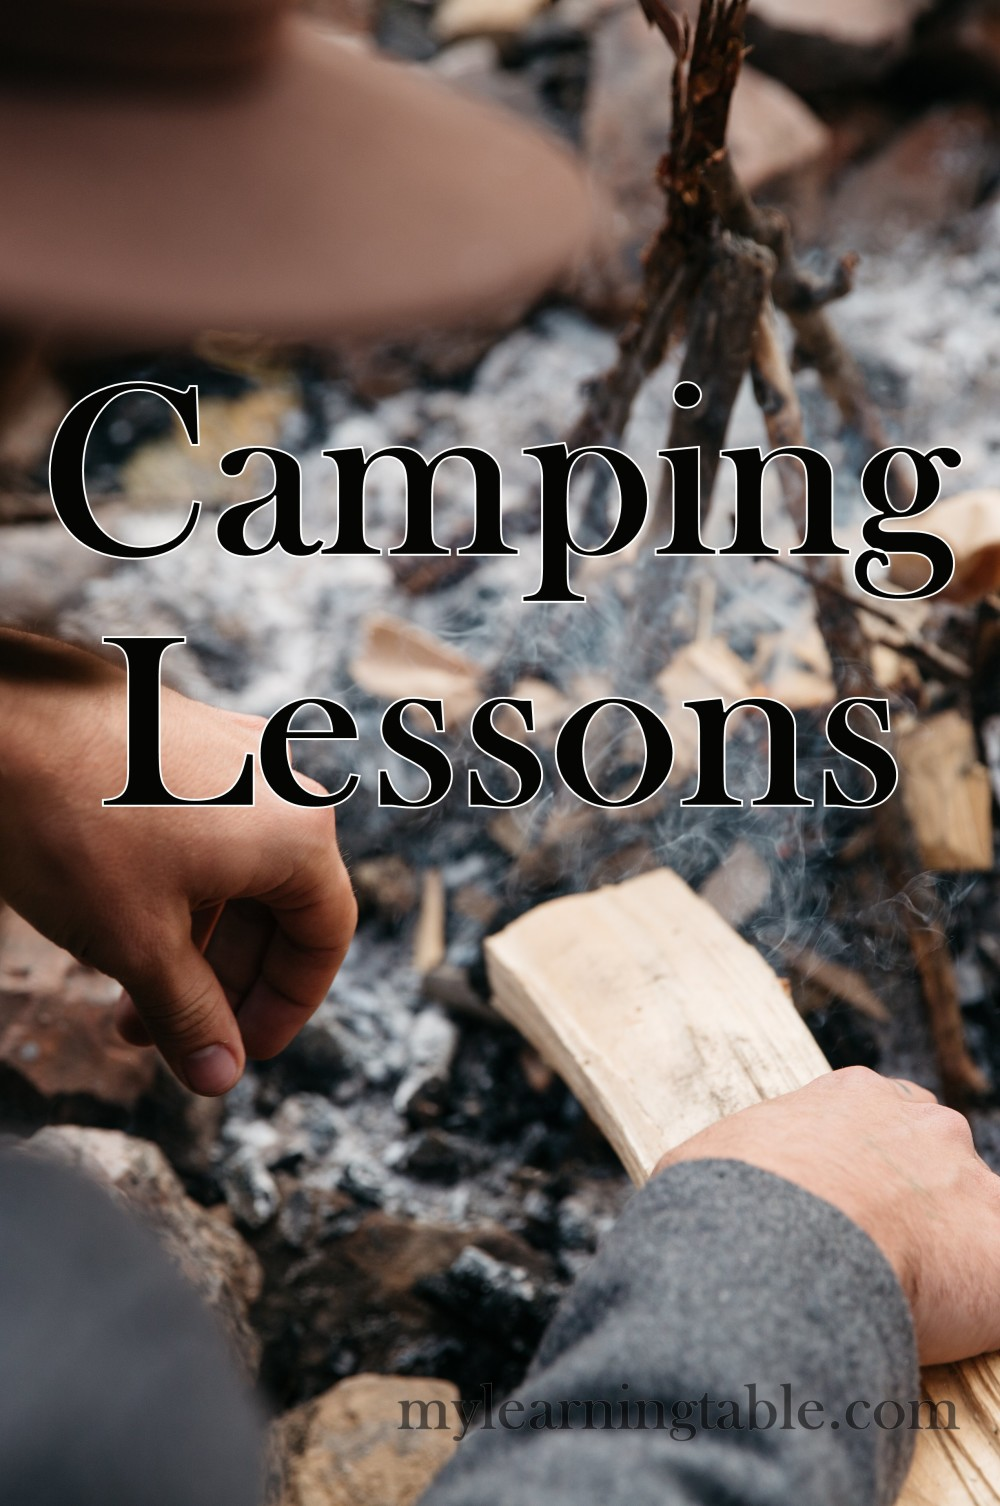 Camping Lessons mylearningtable.com